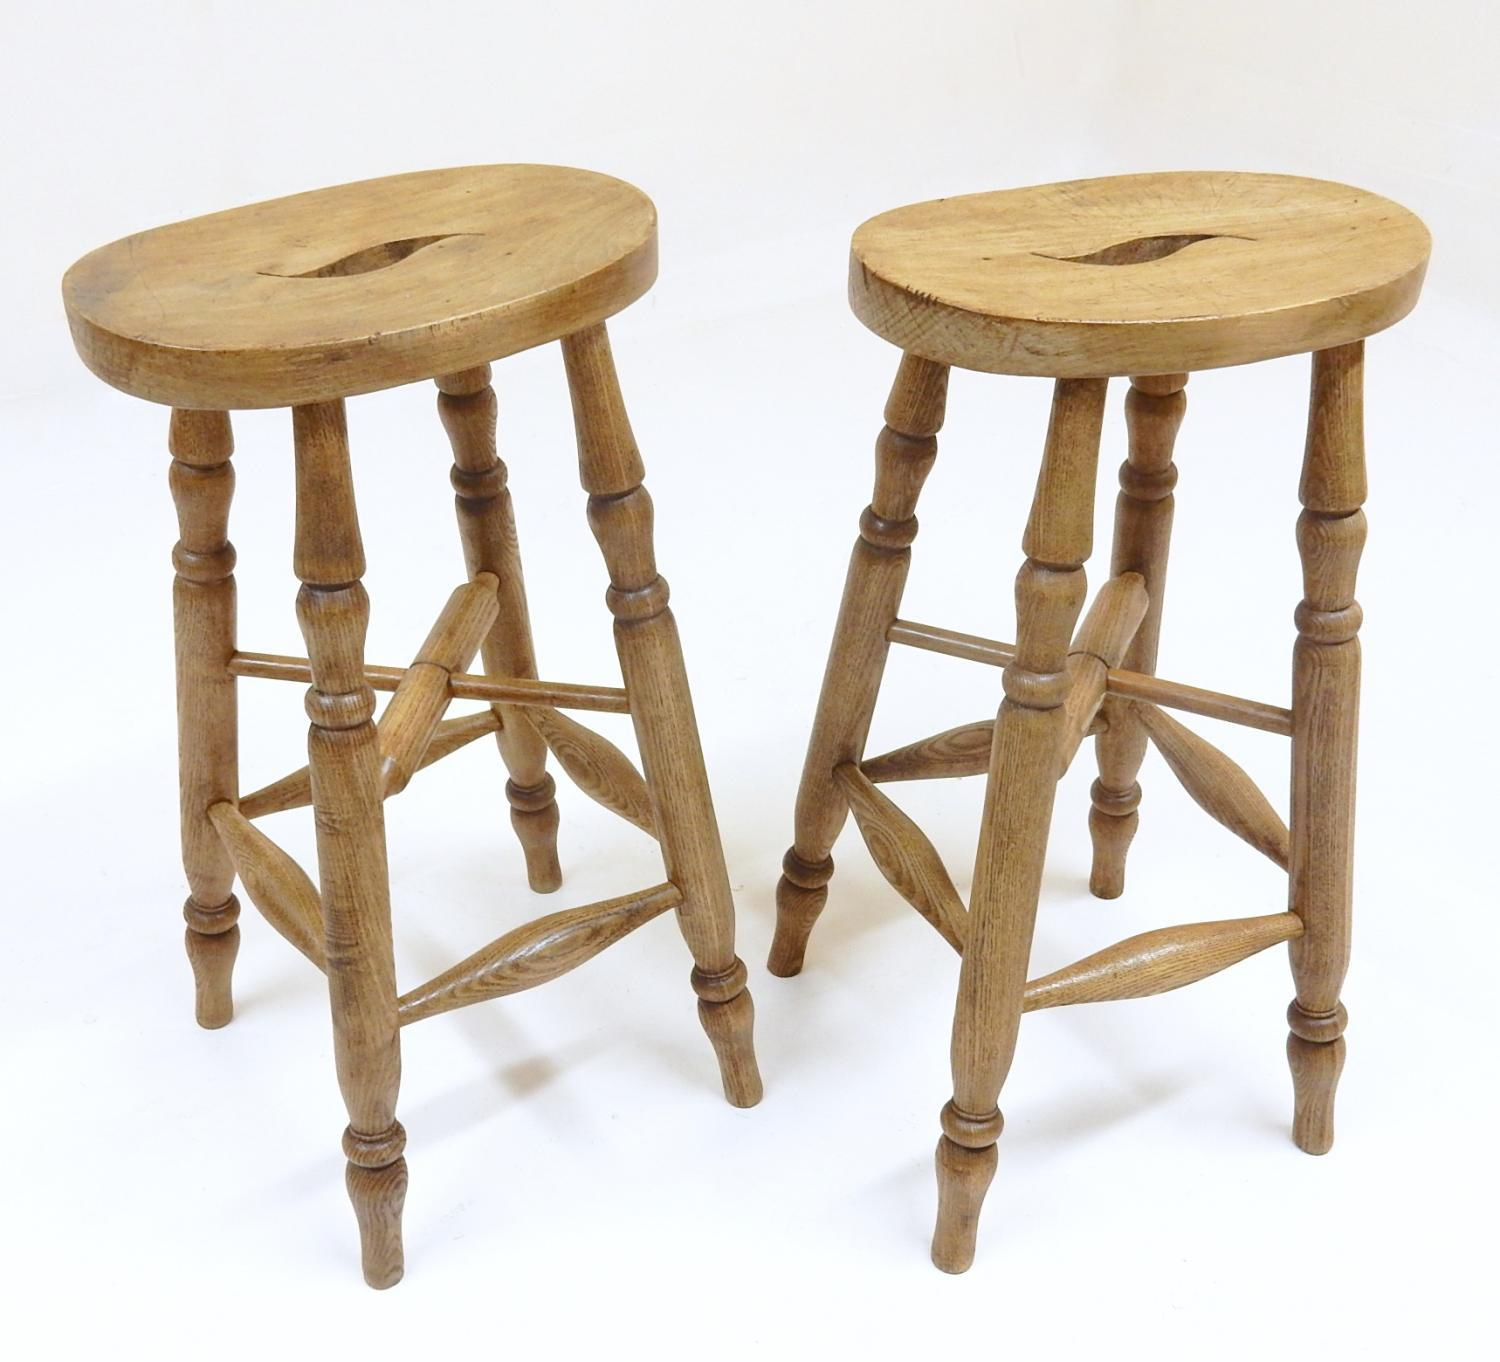 Antique bar stools in seating